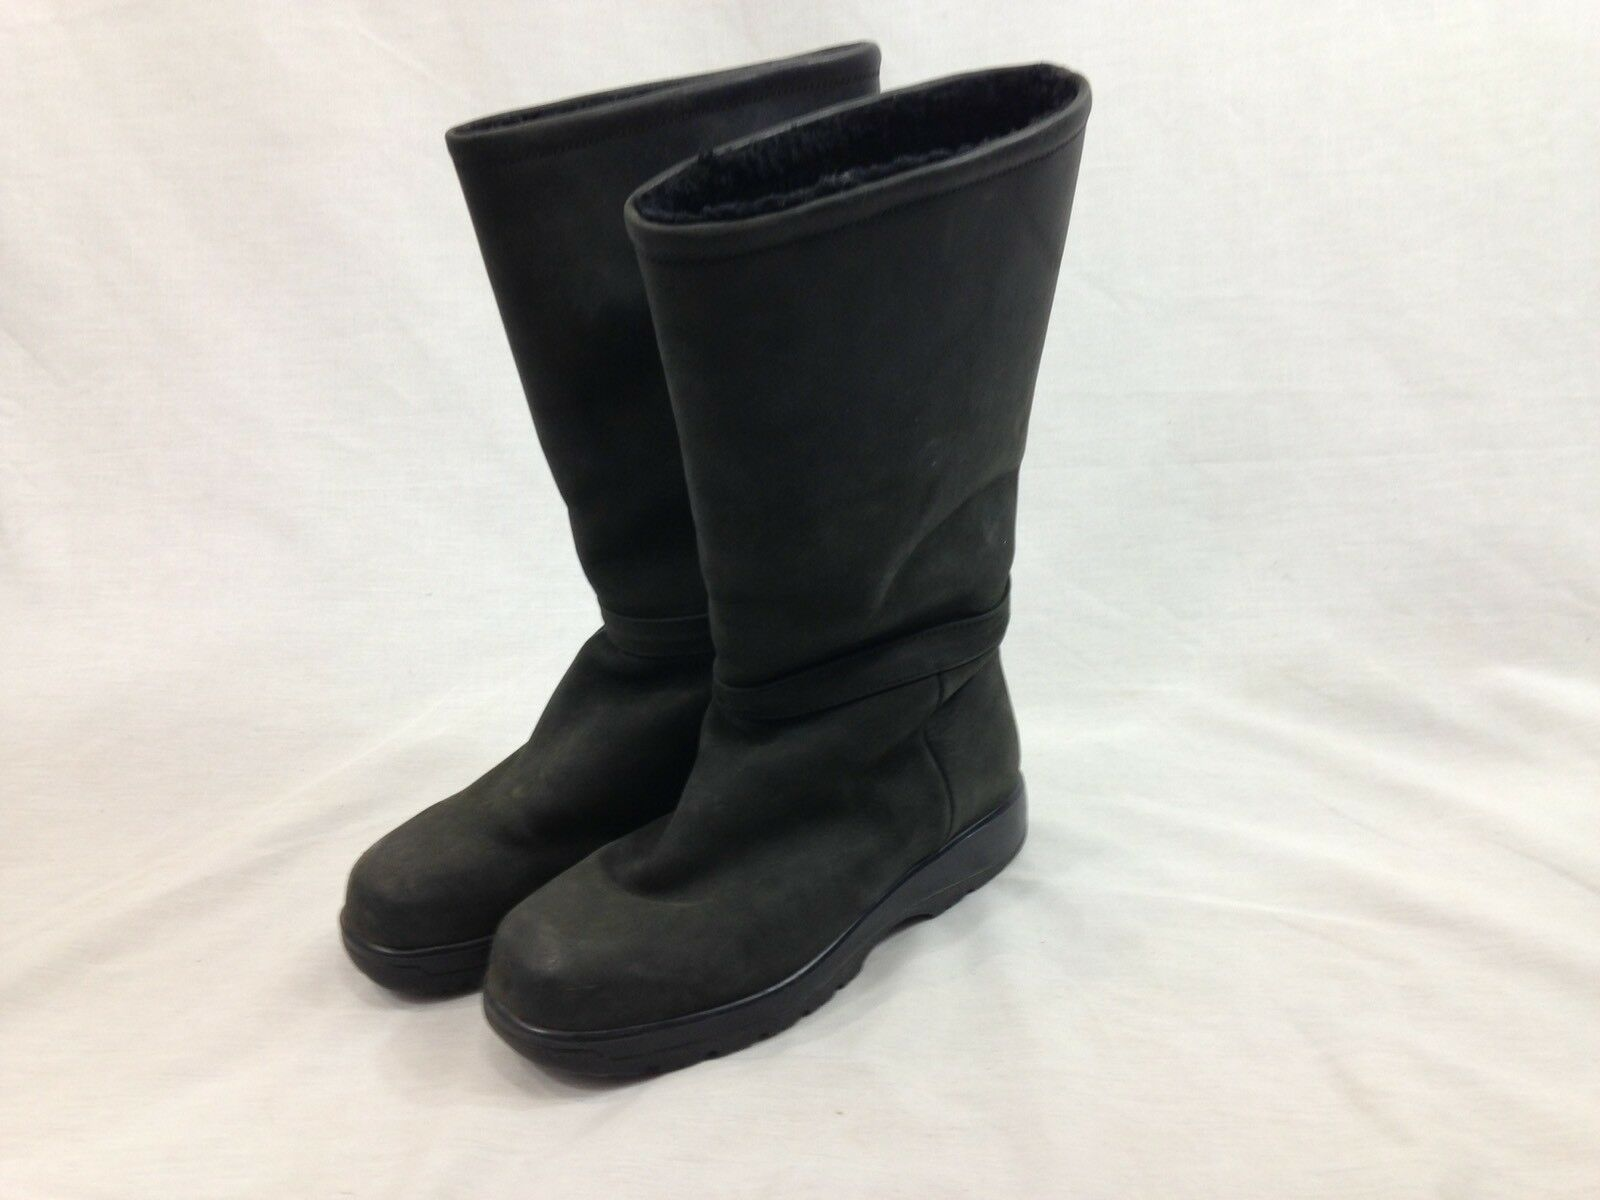 LL Bean Leather Boots Womens 7 Gray Black Tall Slip Ons Fleece Lined Canada